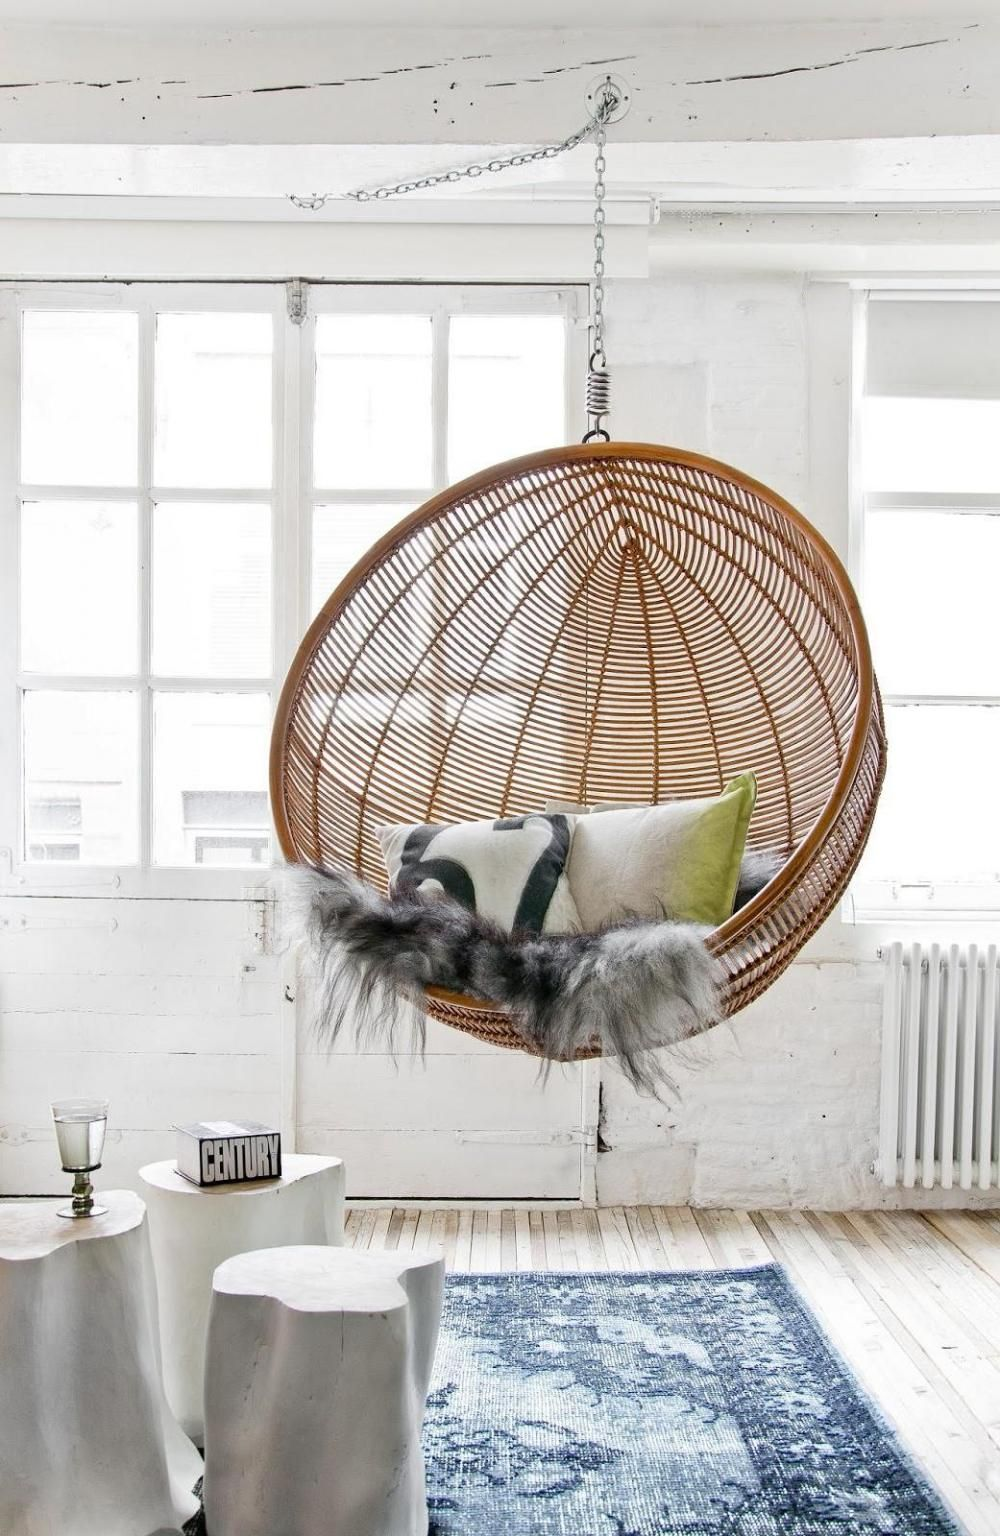 Korbsessel Für Wohnzimmer Get The Best And Get Comfy From Hanging Basket Chair Drawhome